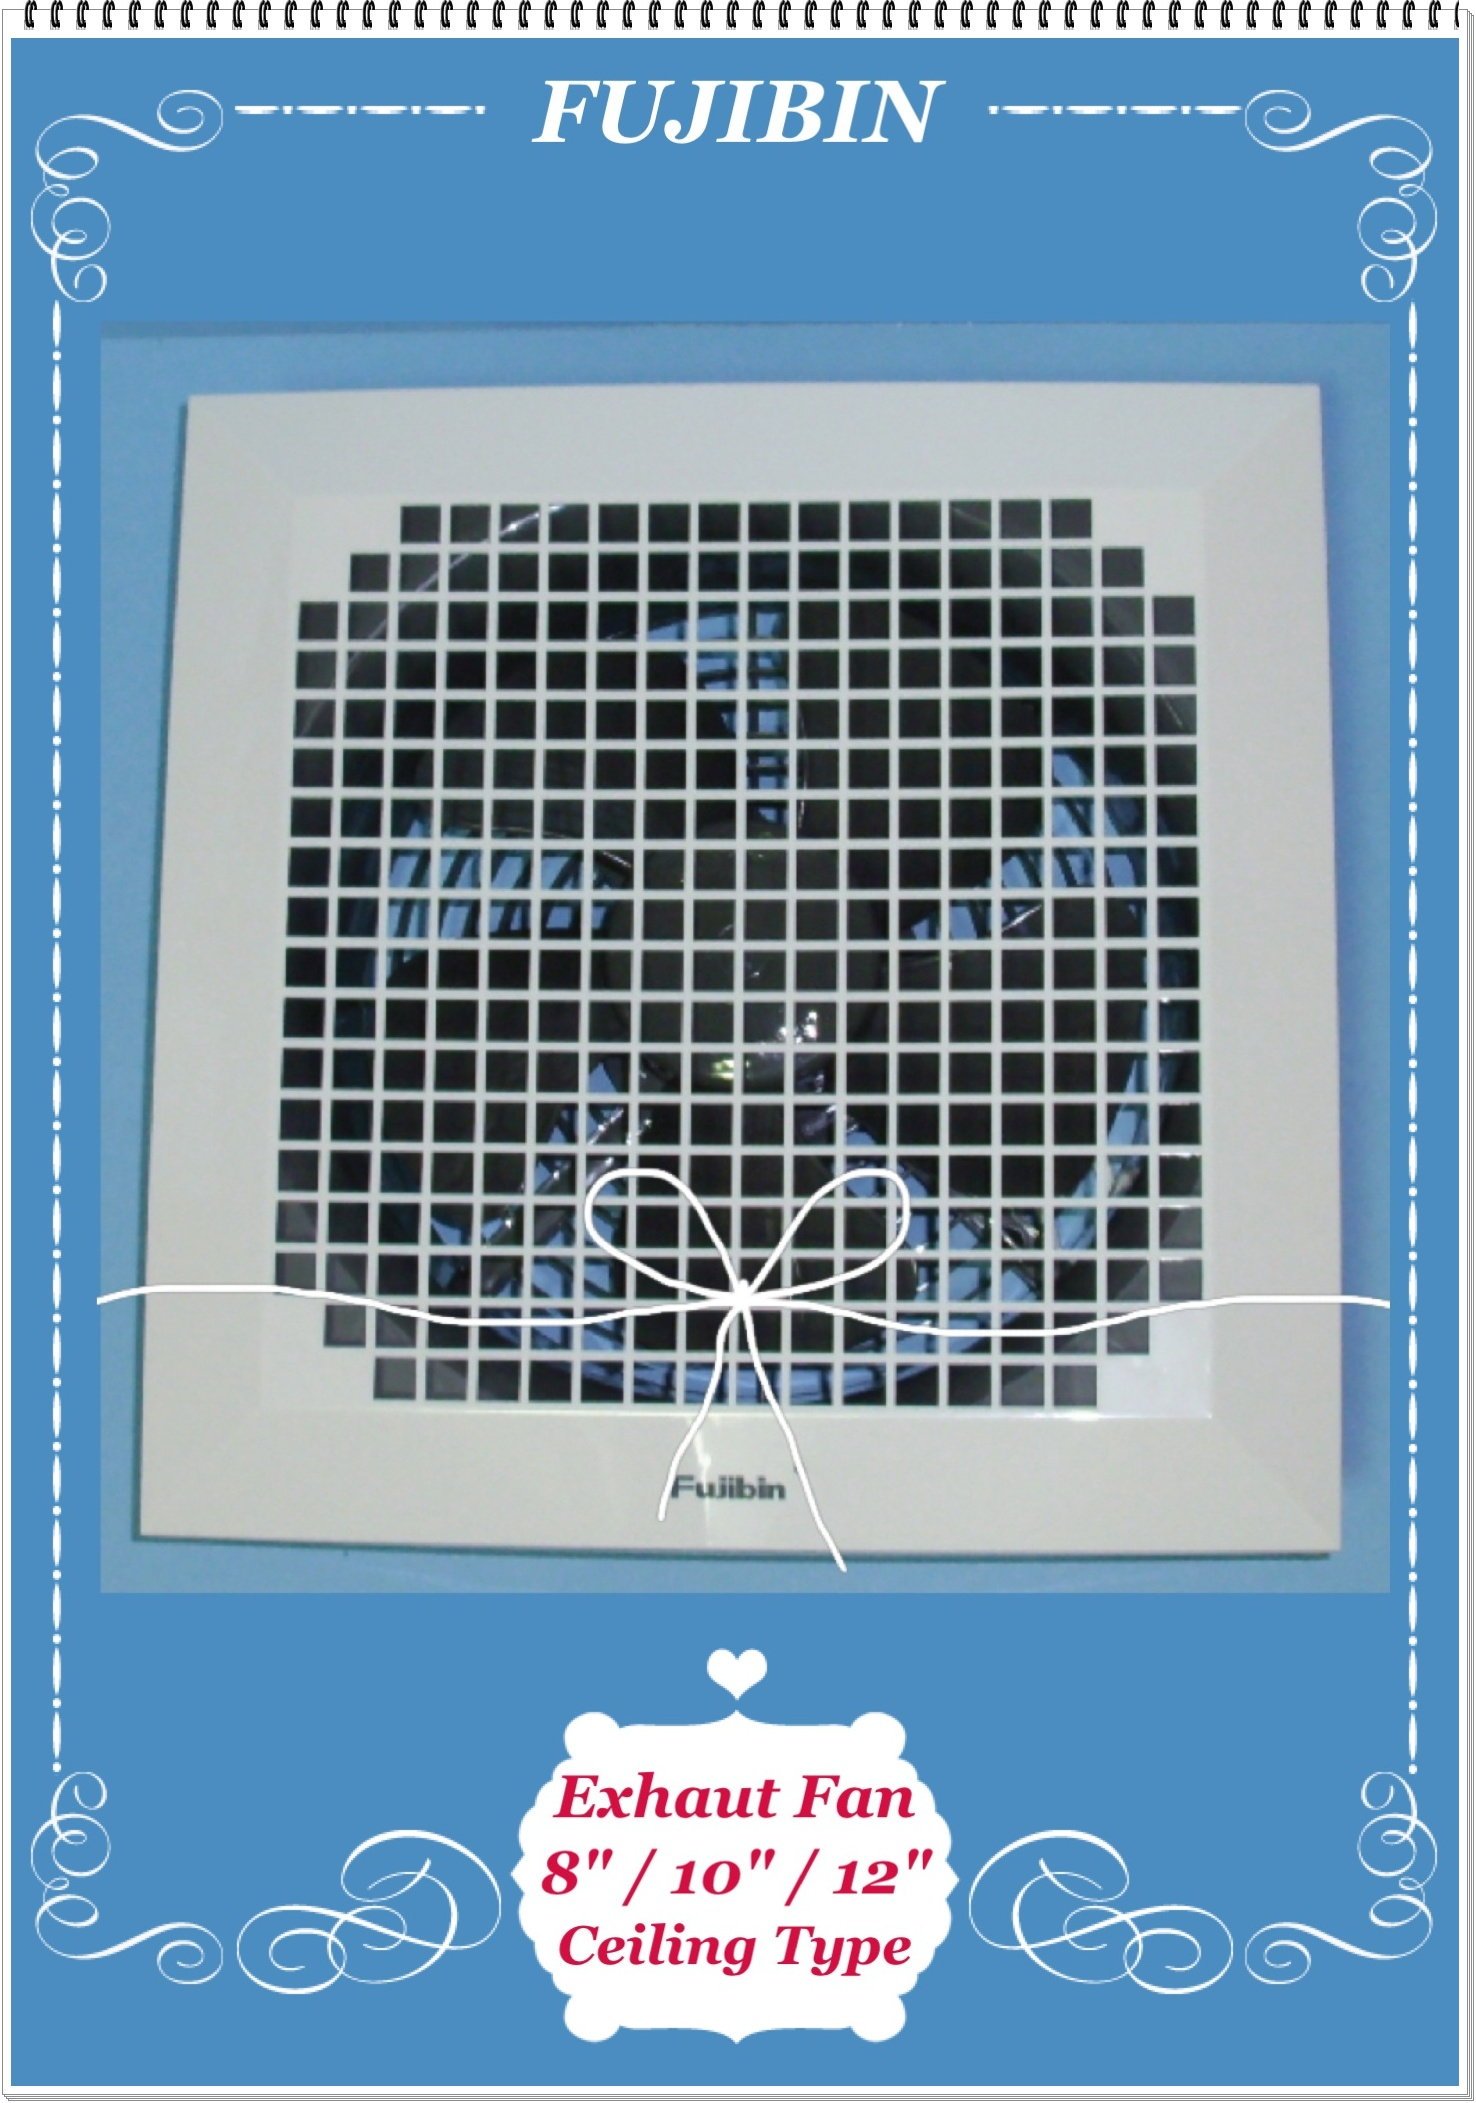 We Also carry the Ceiling Exhaust Fan With side Ducting Pipe type for